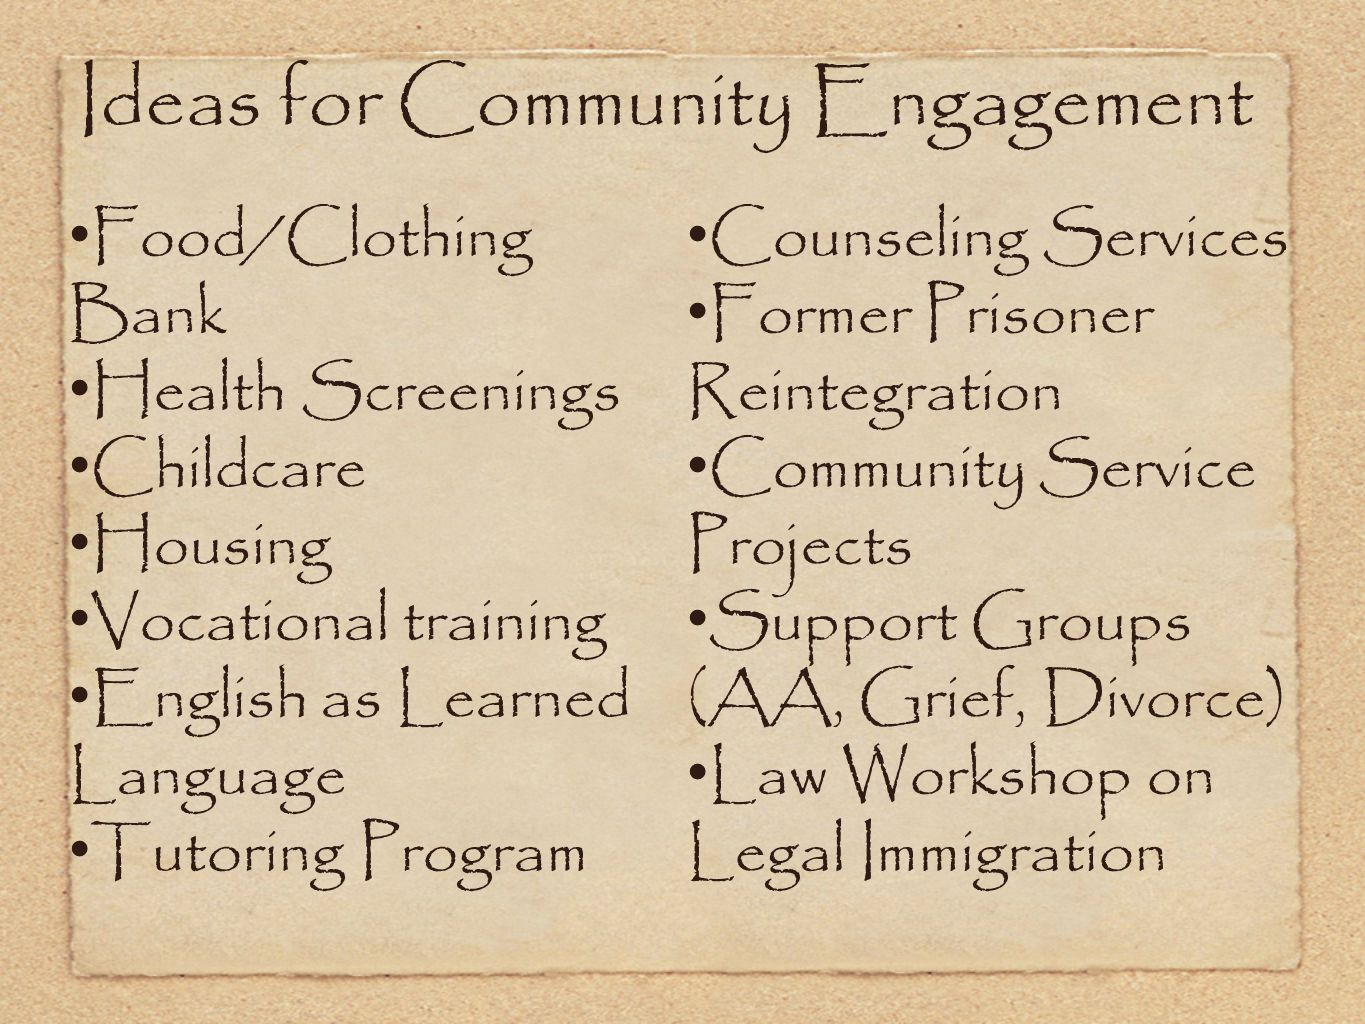 Ideas for Community Engagement Food/Clothing Bank Health Screenings Childcare Housing Vocational training English as Learned Language Tutoring Program Counseling Services Former Prisoner Reintegration Community Service Projects Support Groups (AA, Grief, Divorce) Law Workshop on Legal Immigration